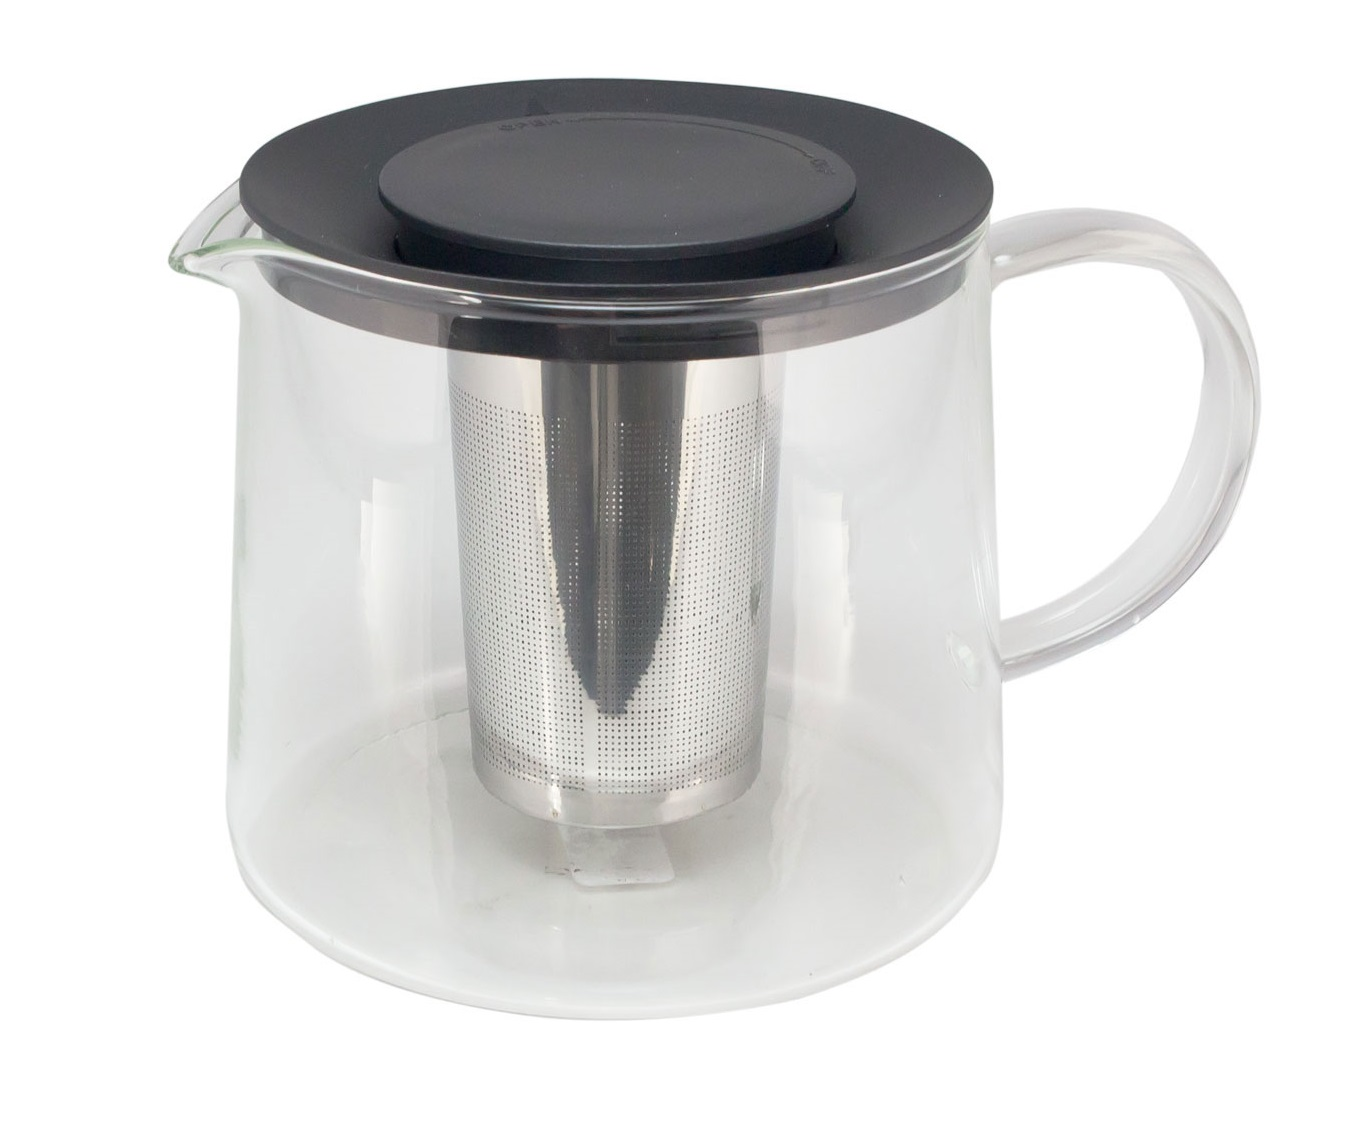 theepot glas 1 5 liter kopen cookinglife theeservies. Black Bedroom Furniture Sets. Home Design Ideas